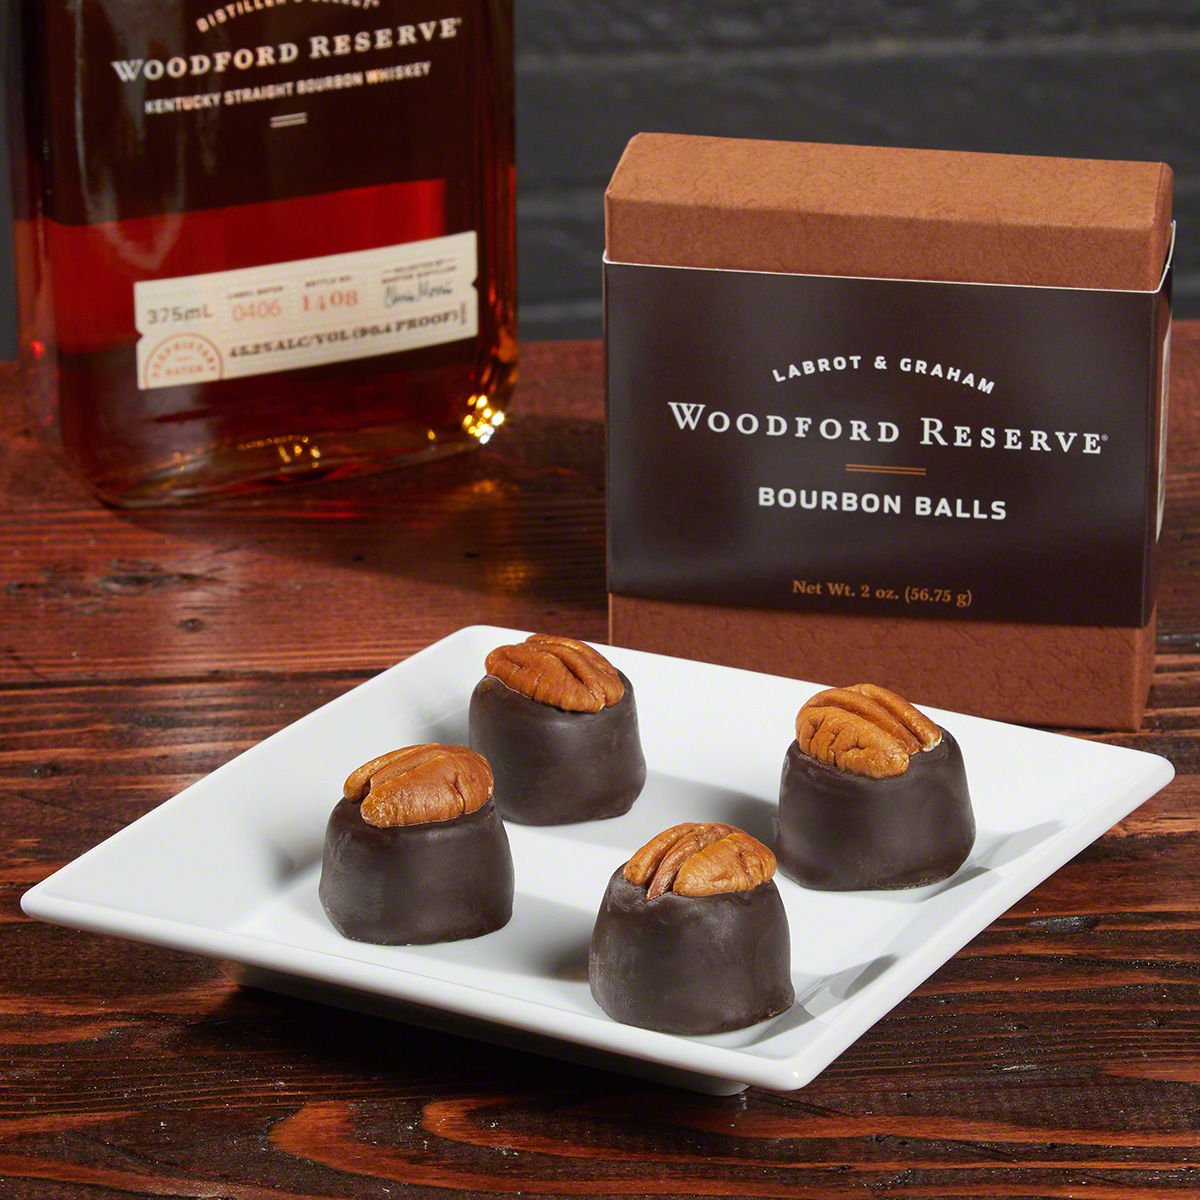 FREE GIFT - NO CHARGE - Woodford Reserve Bourbon Balls (Limit one)